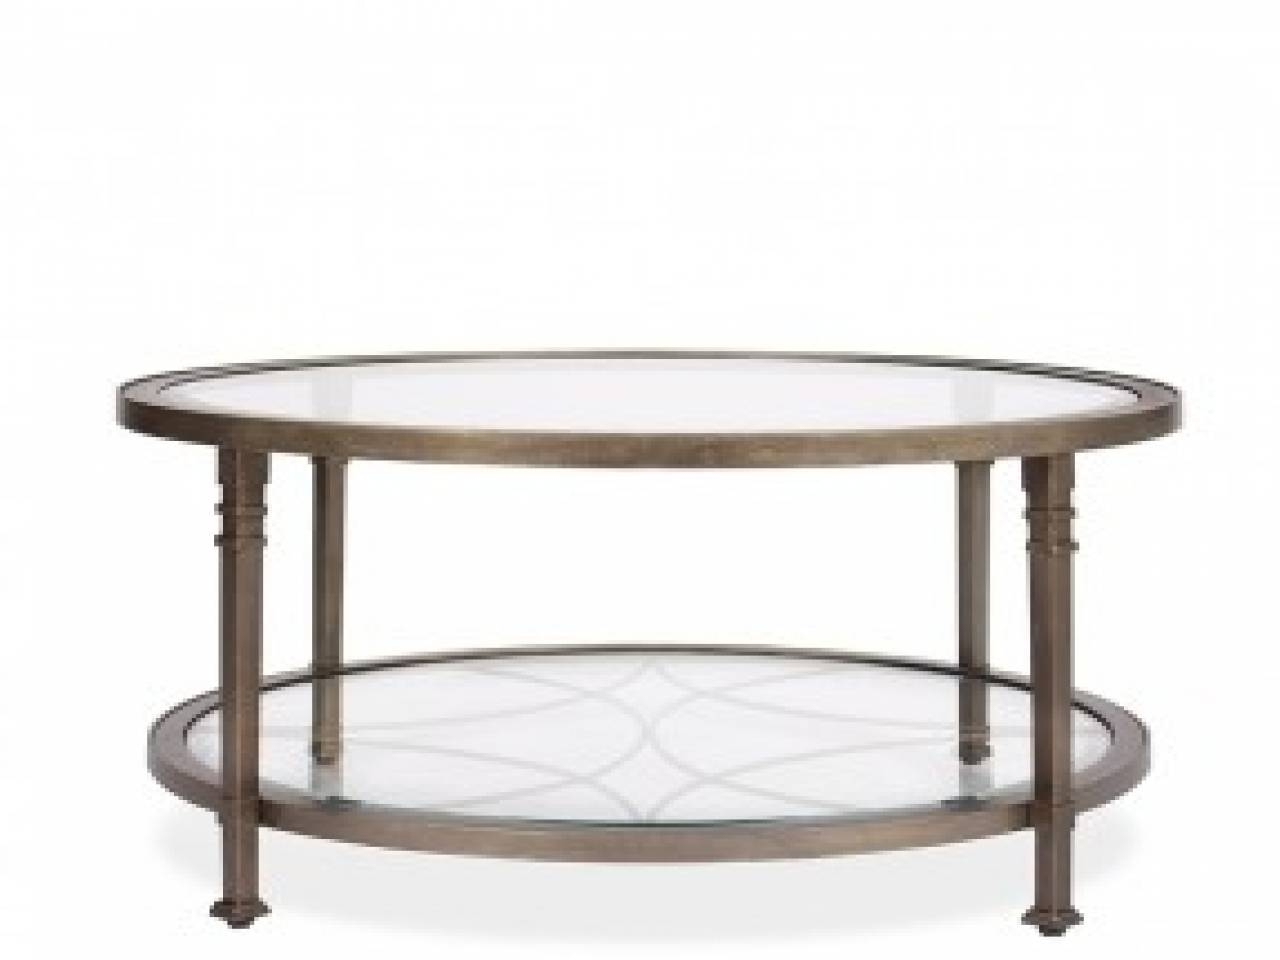 Collection In Round Coffee Table Metal With Coffee Table Awesome throughout Glass Circular Coffee Tables (Image 12 of 31)